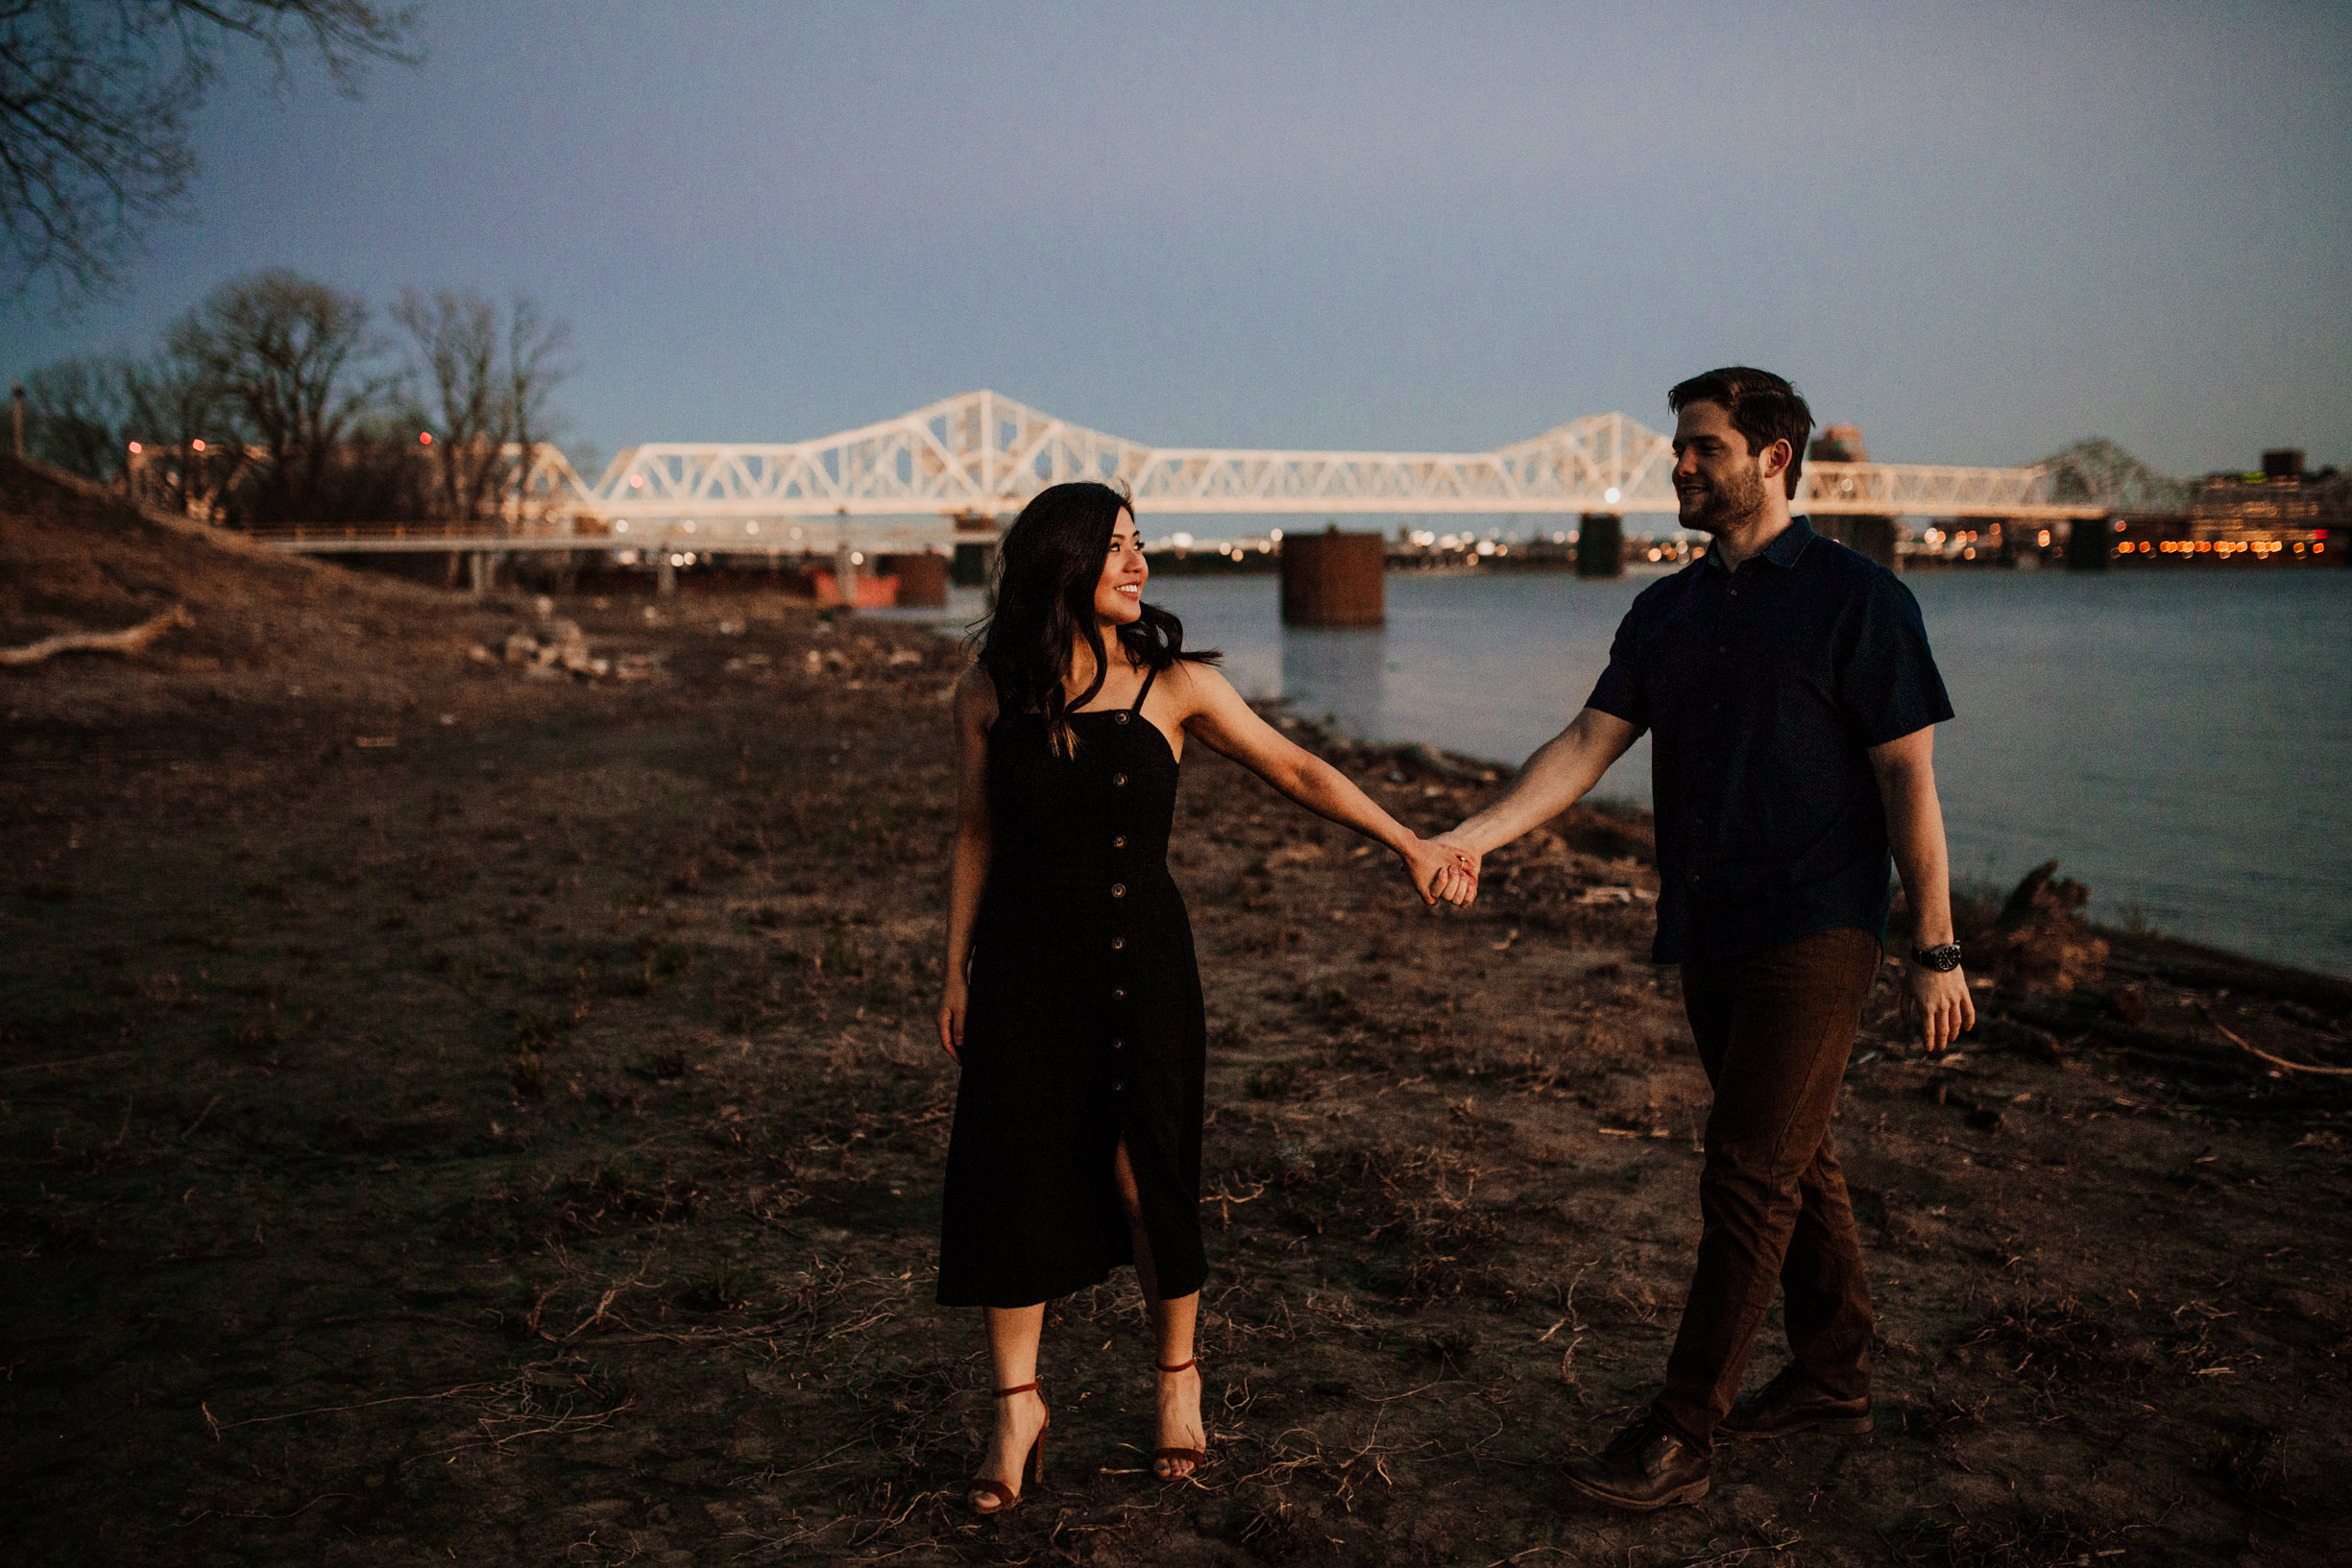 louisville-engagement-photographer-crystal-ludwick-photo-tammy-and-caleb-engagement-photography (6 of 32).jpg